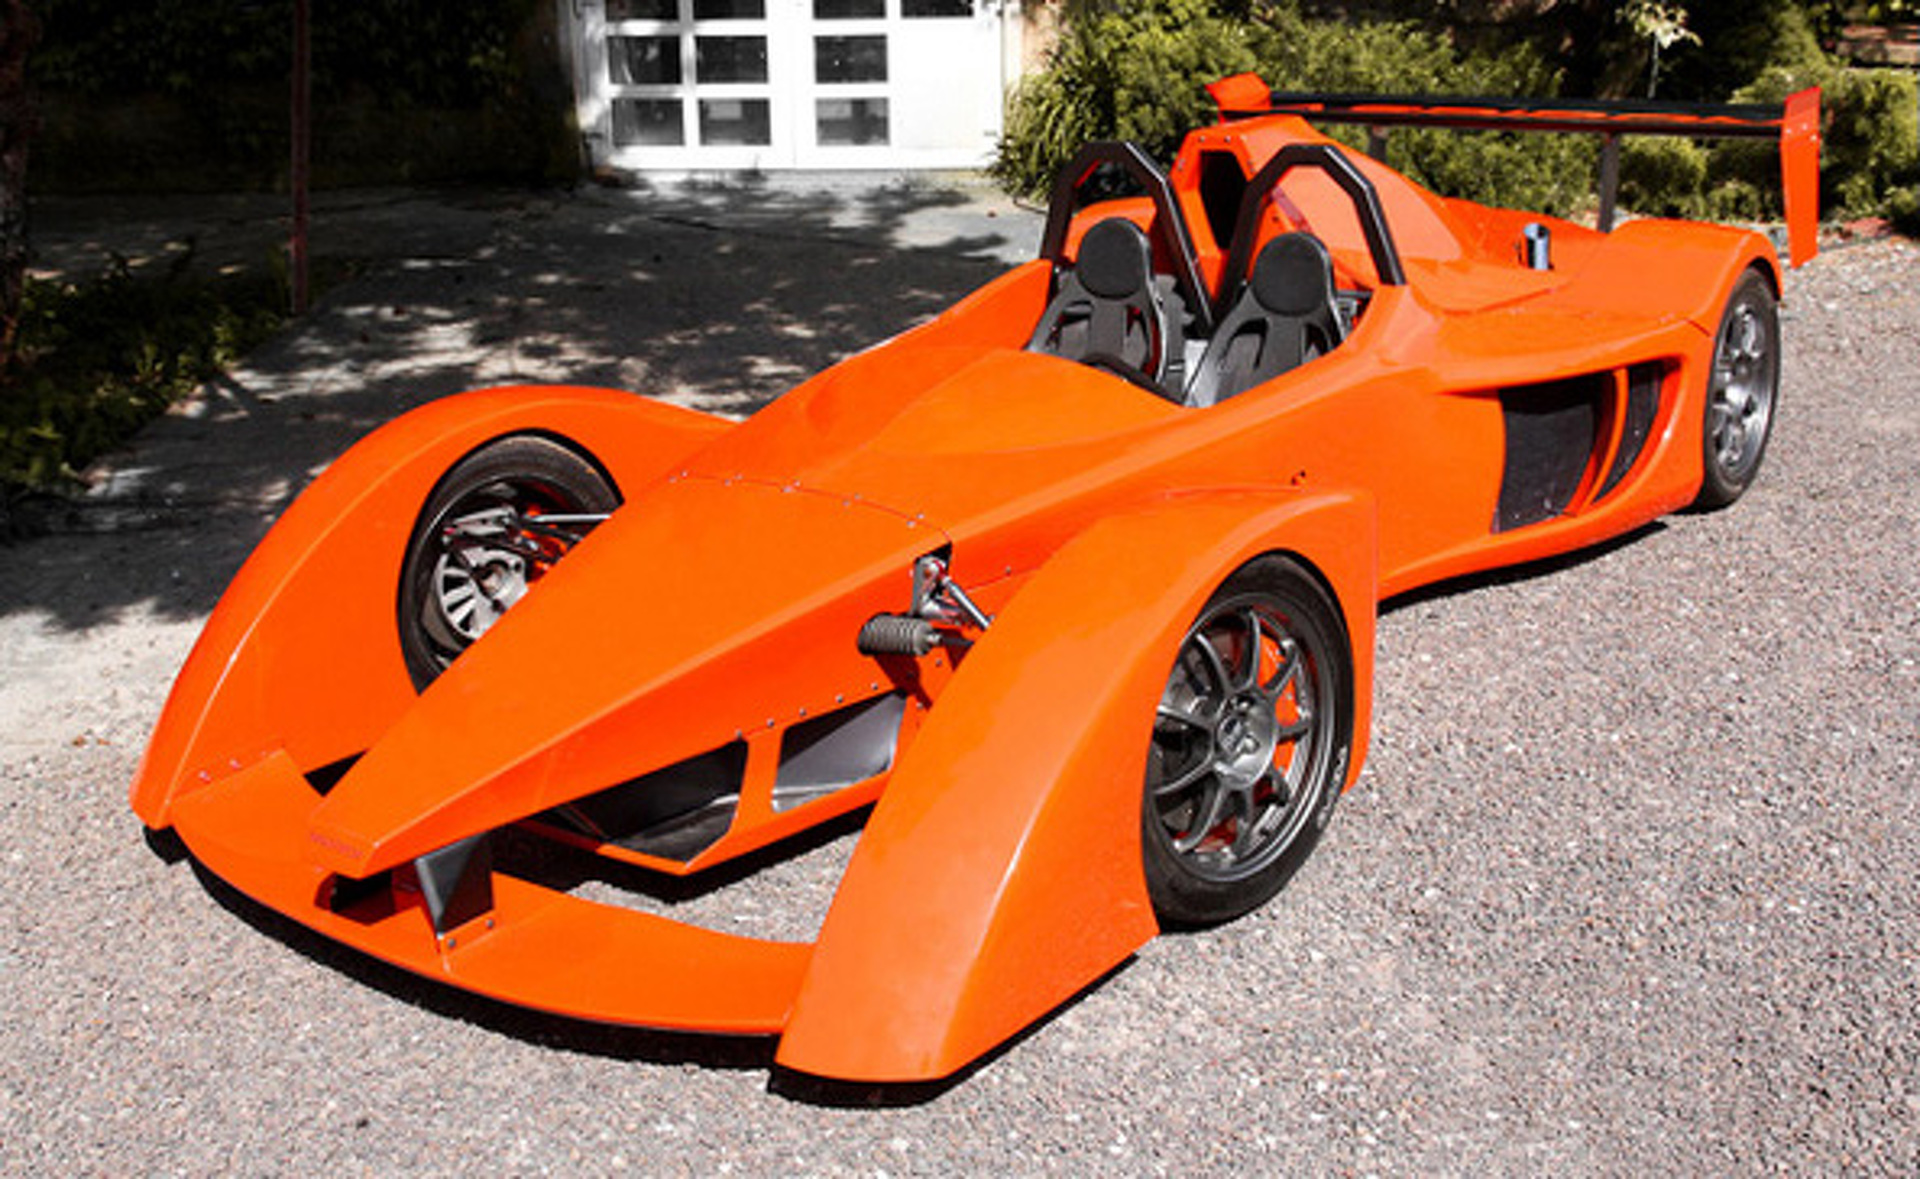 Innotech Aspiron: Czech-Built Lightweight Track Monster